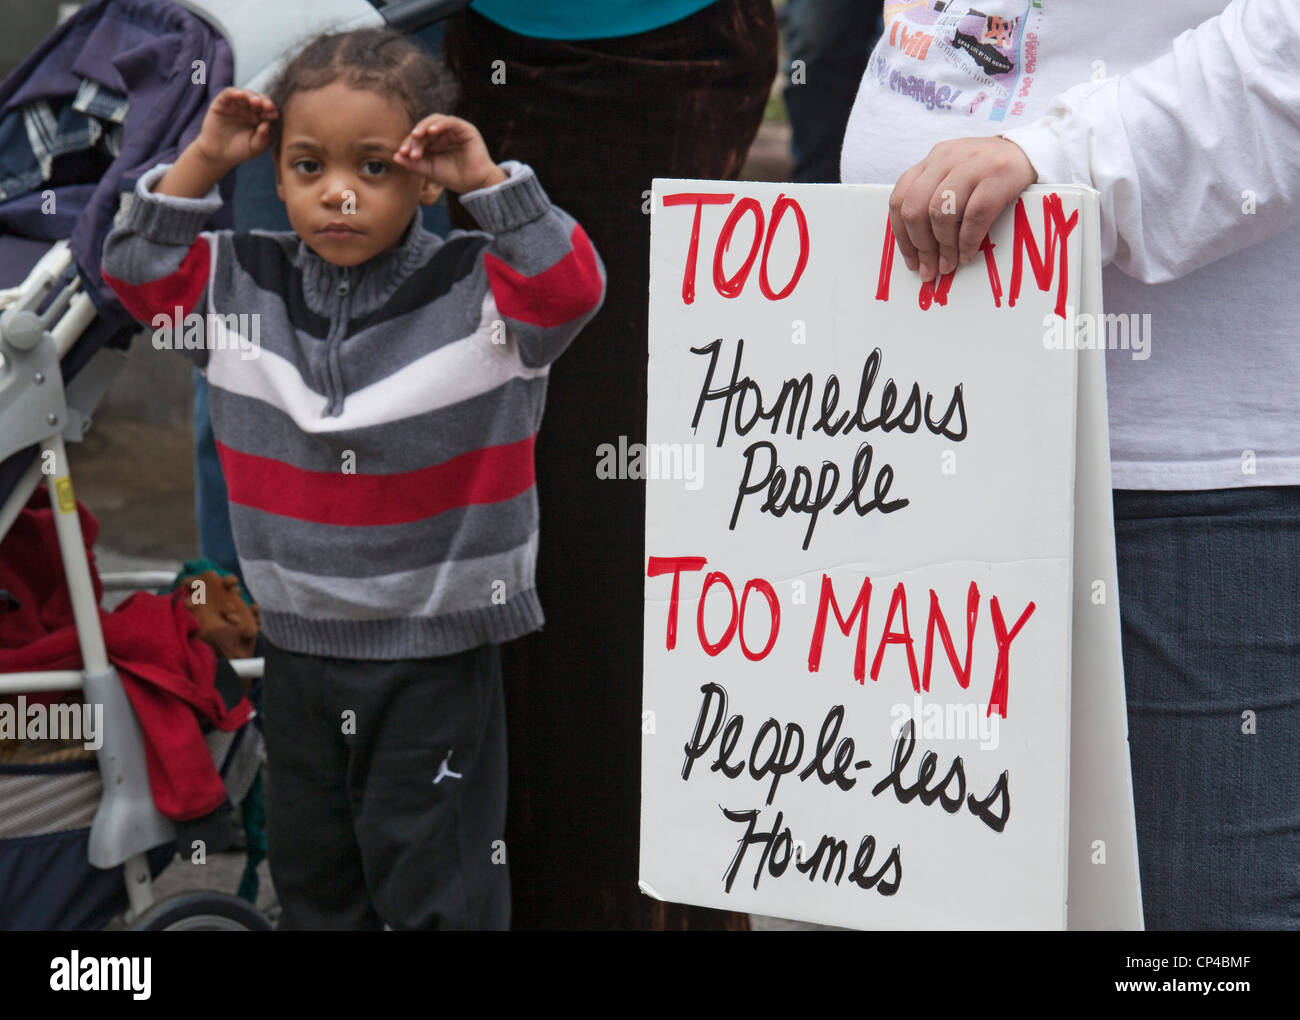 Detroit, Michigan - Protests against banks and foreclosures were part of a May Day march and rally. - Stock Image